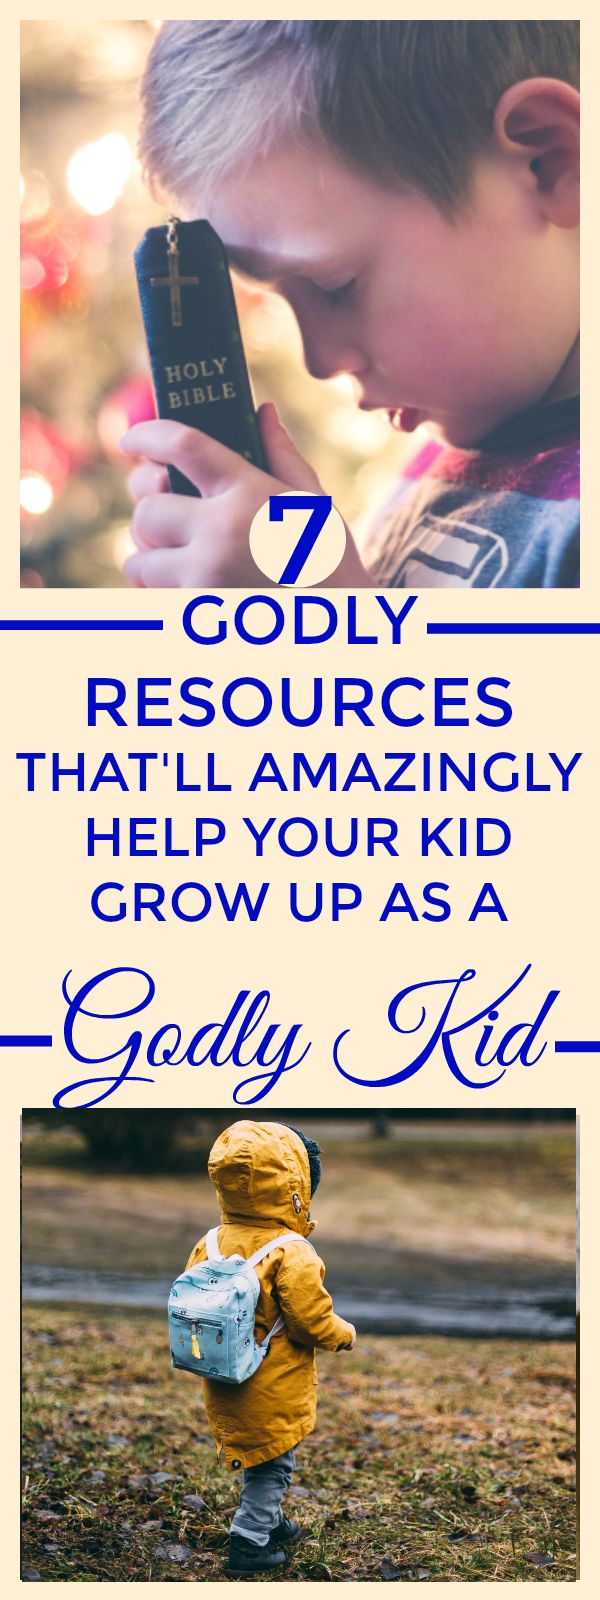 Totally LOVED these Godly list of resources that'll make my kid become a Godly kid! WOW! I have never found such good parenting resources for my kids!  They will change my kids' lives! I'm SO glad I found this. #parenting #Christianparenting #family #children